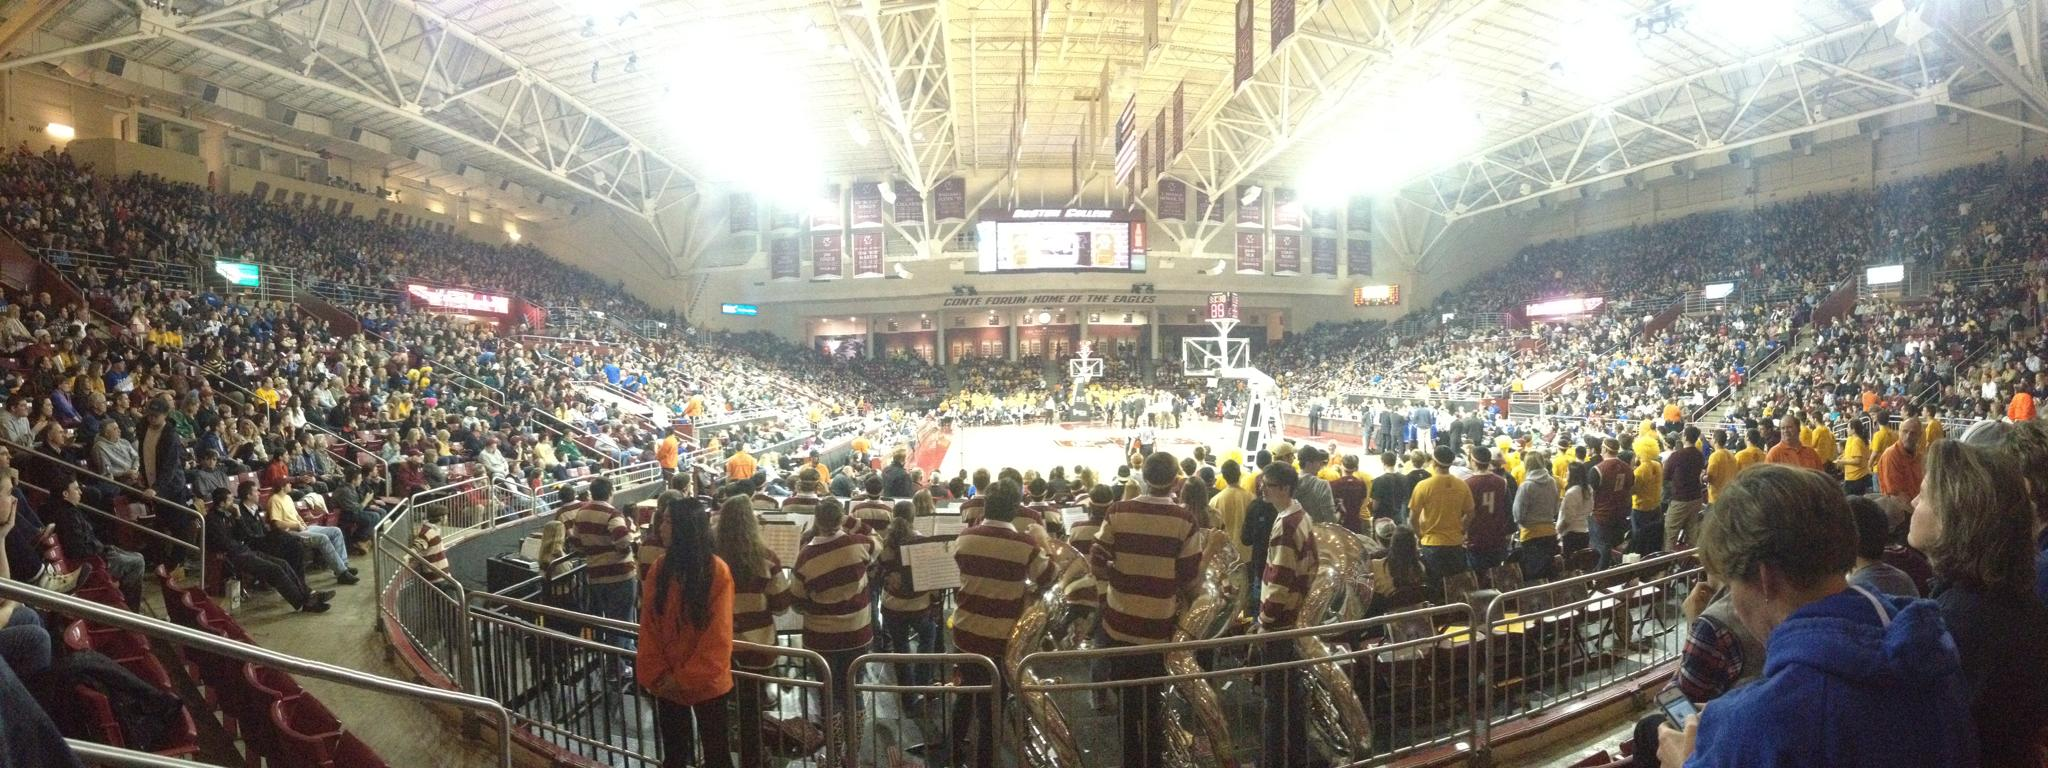 Conte Forum was packed as   the 10-13 Boston College Eagles nearly beat the No.4-ranked Duke Blue Devils